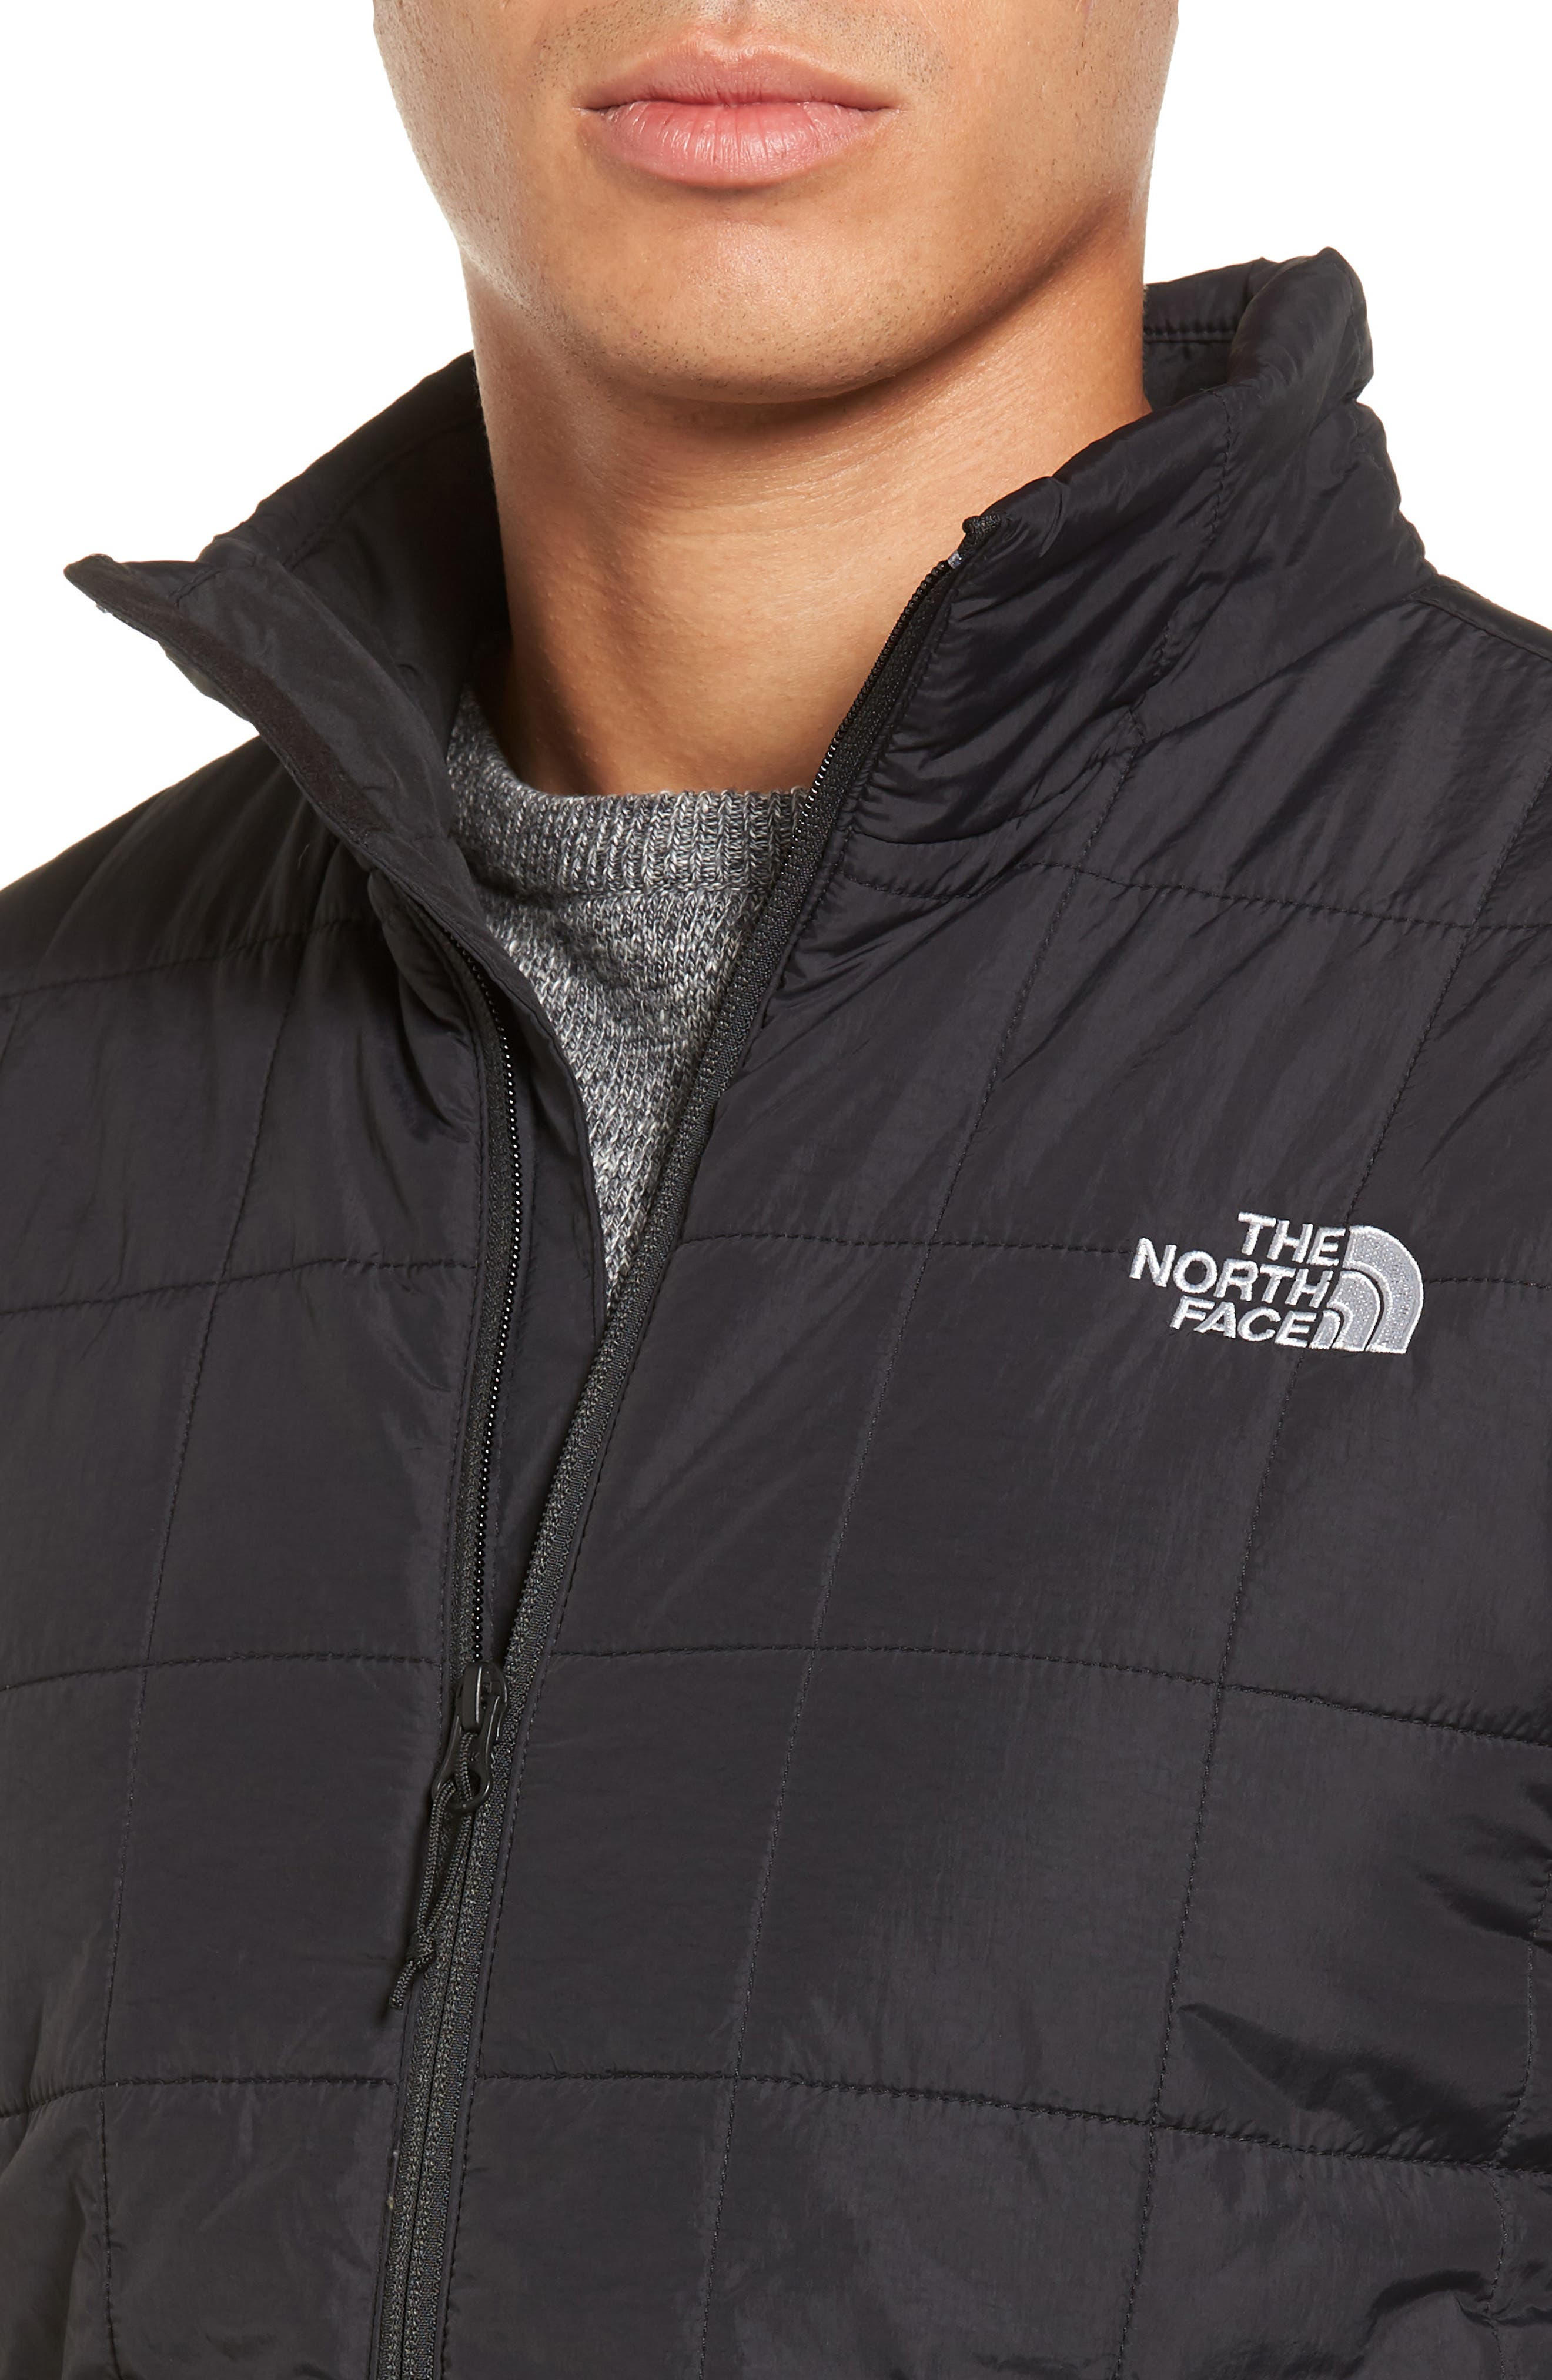 THE NORTH FACE, Harway Heatseaker<sup>™</sup> Jacket, Alternate thumbnail 5, color, 001